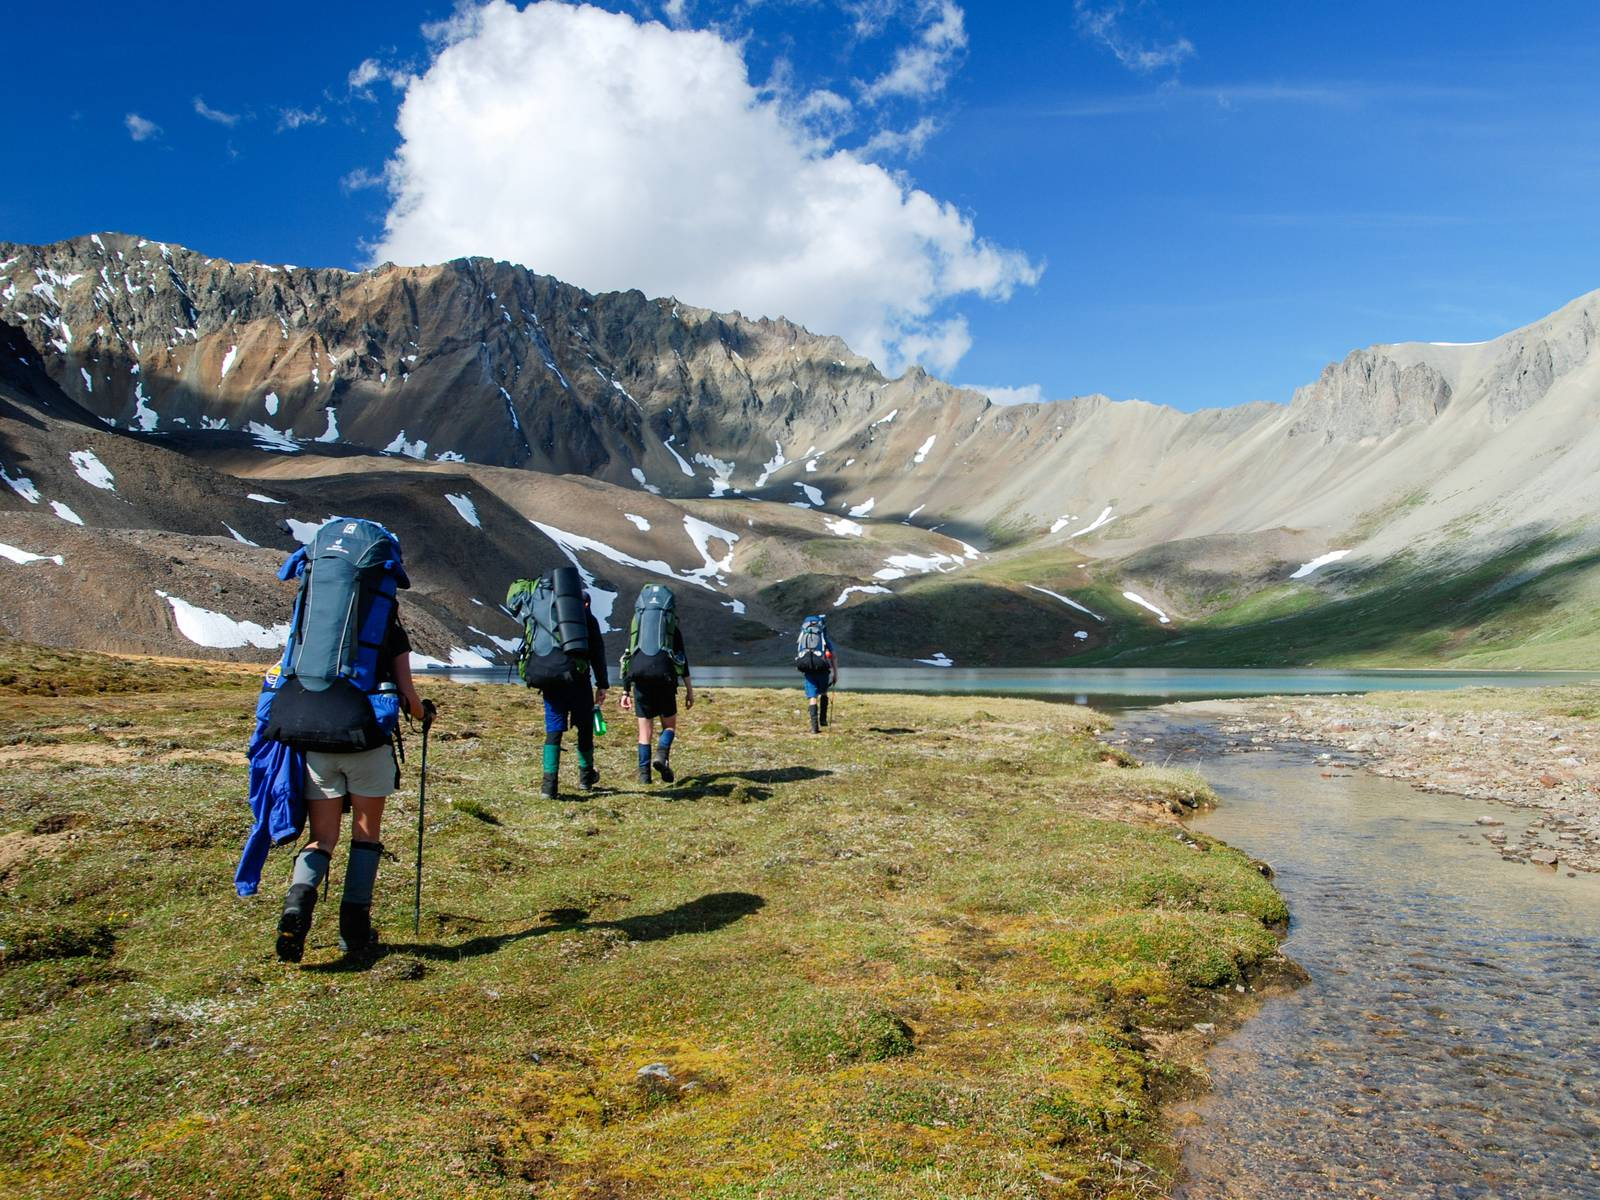 Group hiking across a green valley toward an alpine lake on a sunny day in Alaska